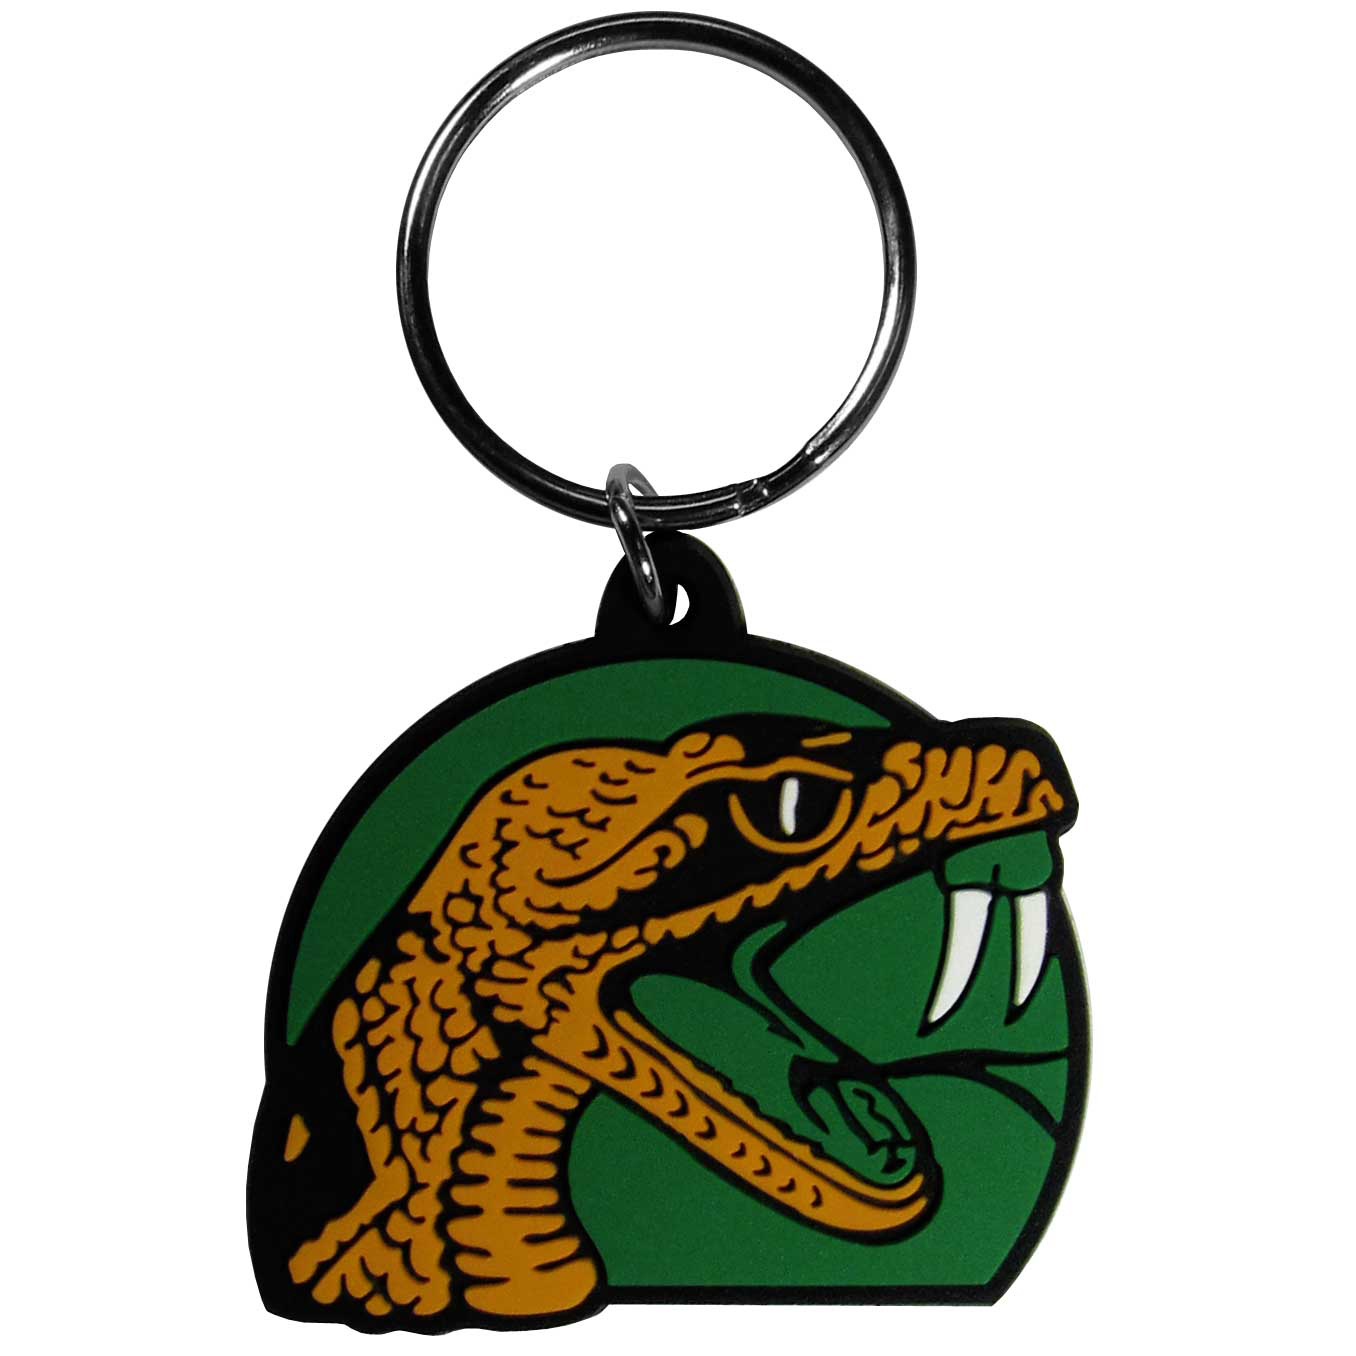 Florida A&M Rattlers Flex Key Chain - Our fun, flexible Florida A&M Rattlers key chains are made of a rubbery material that is layered to create a bright, textured logo.